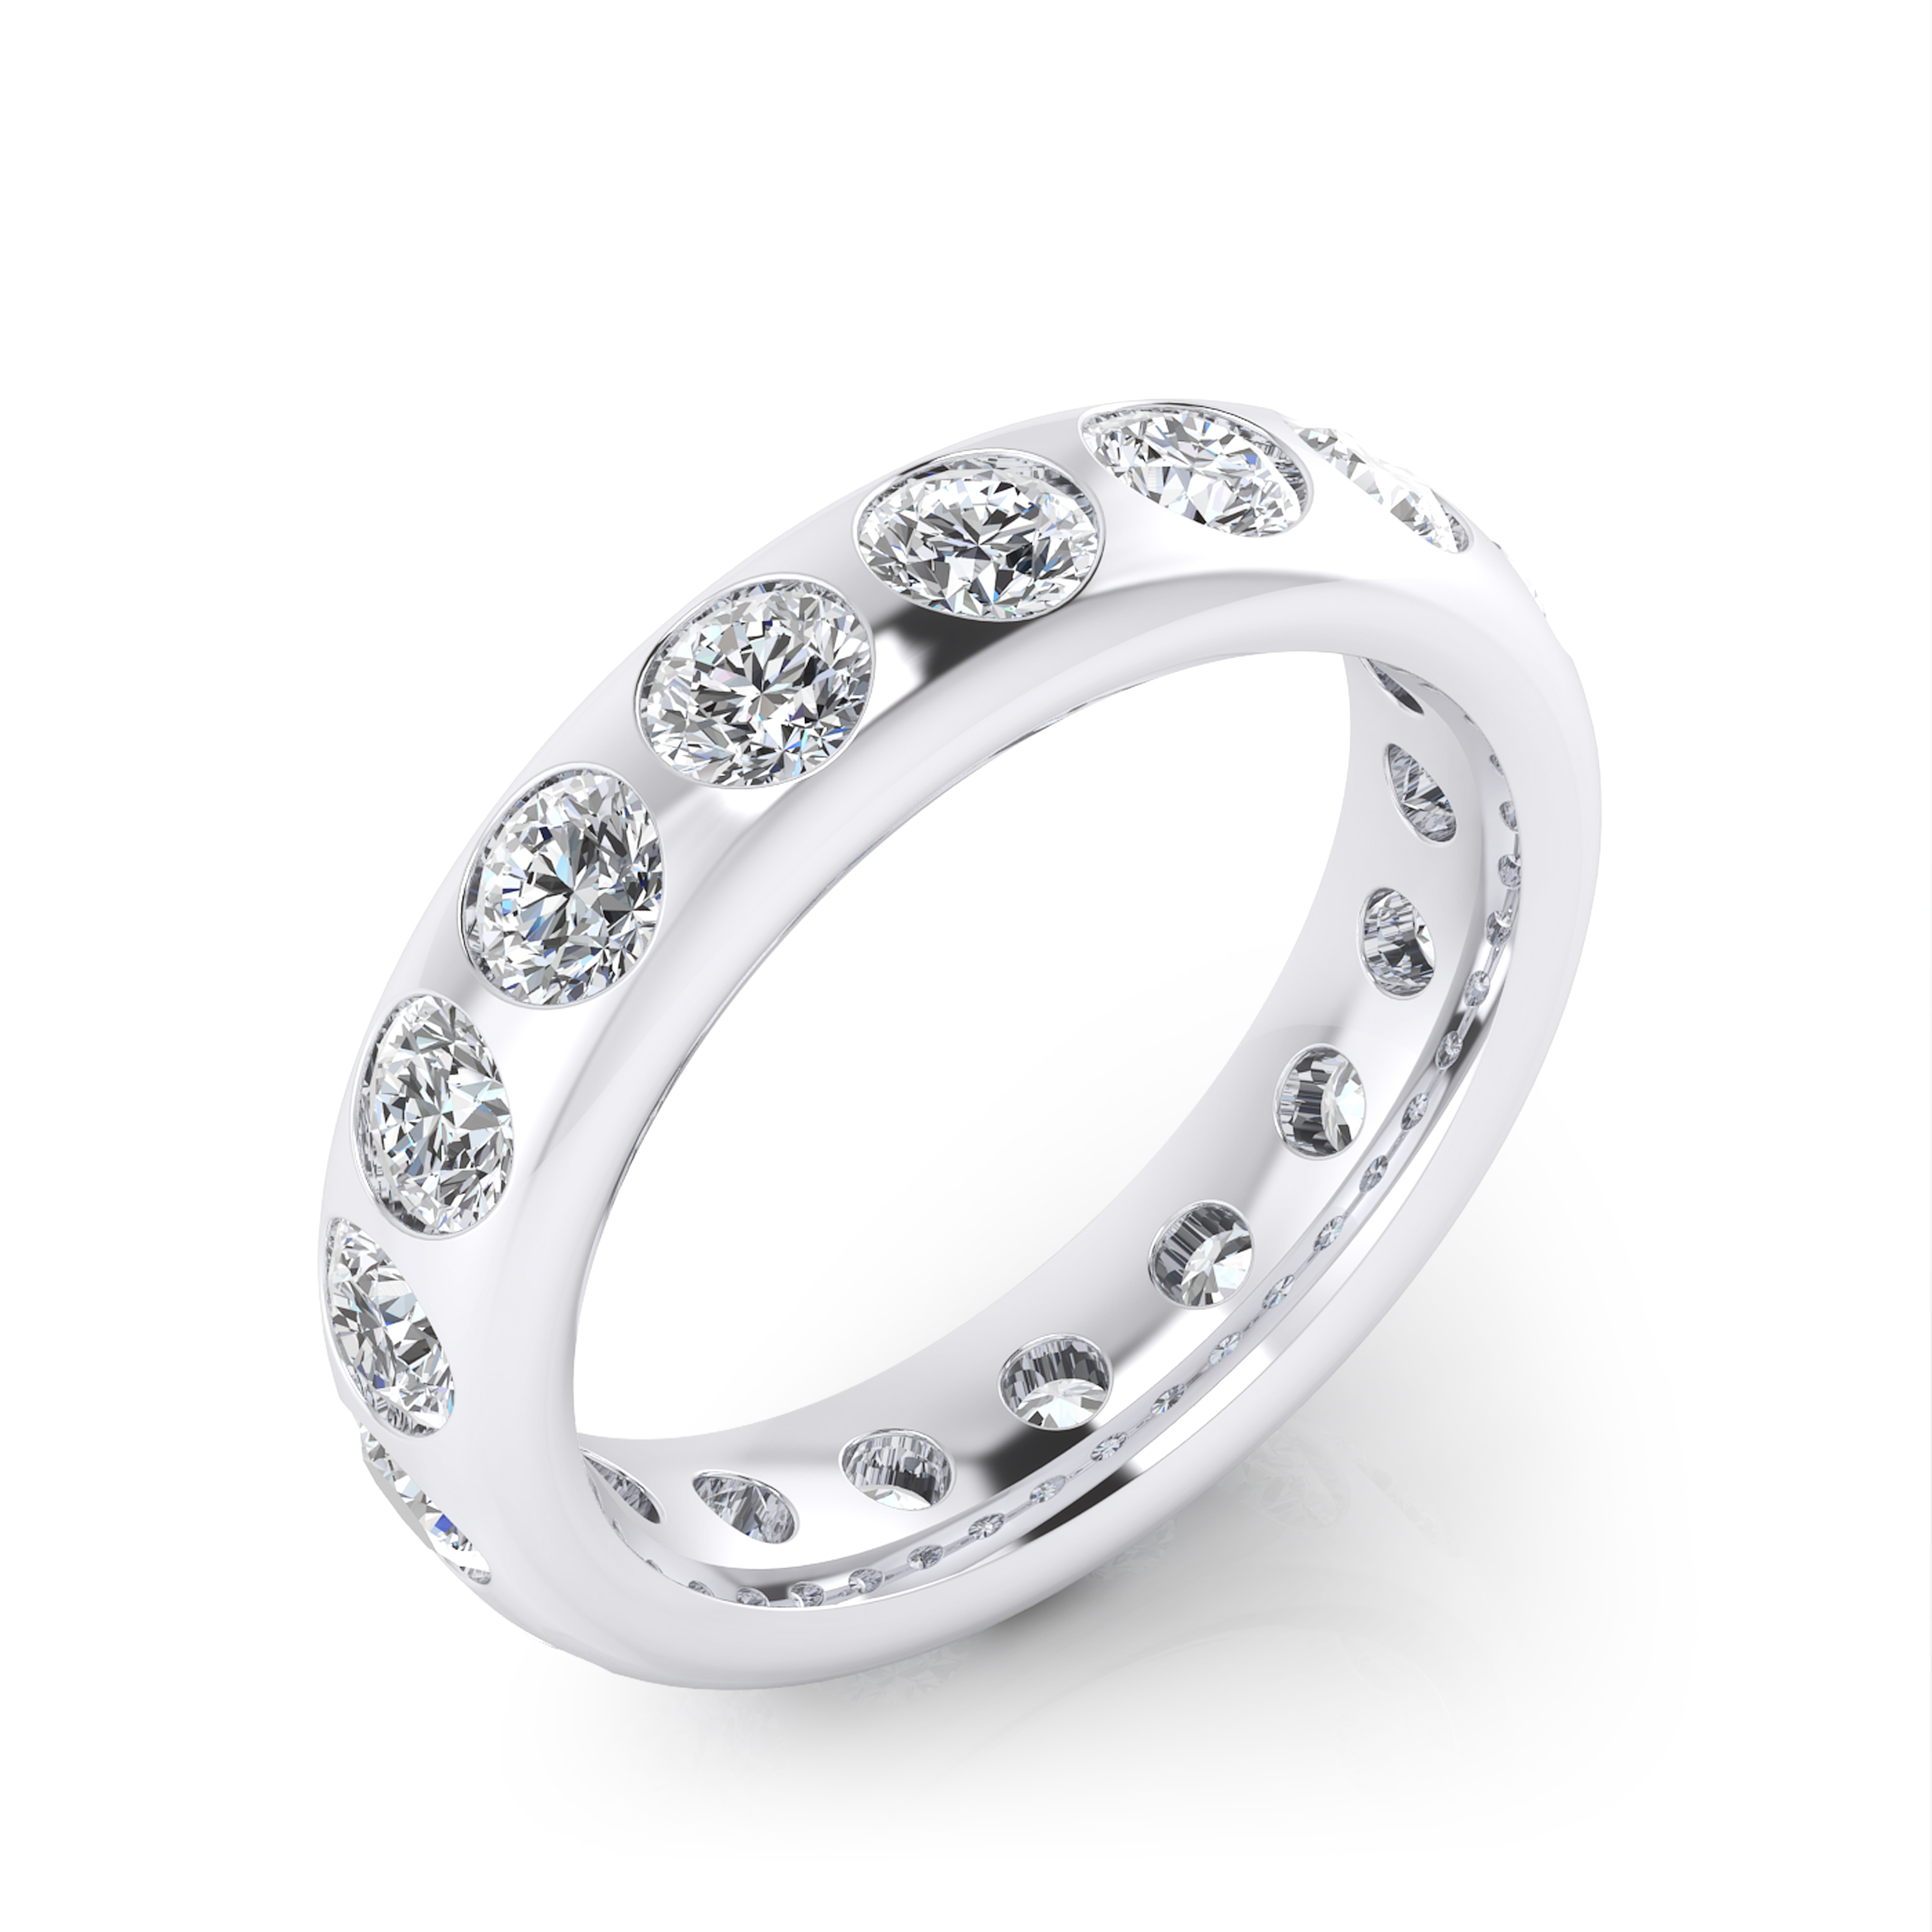 Stunning 18k white gold engagement ring